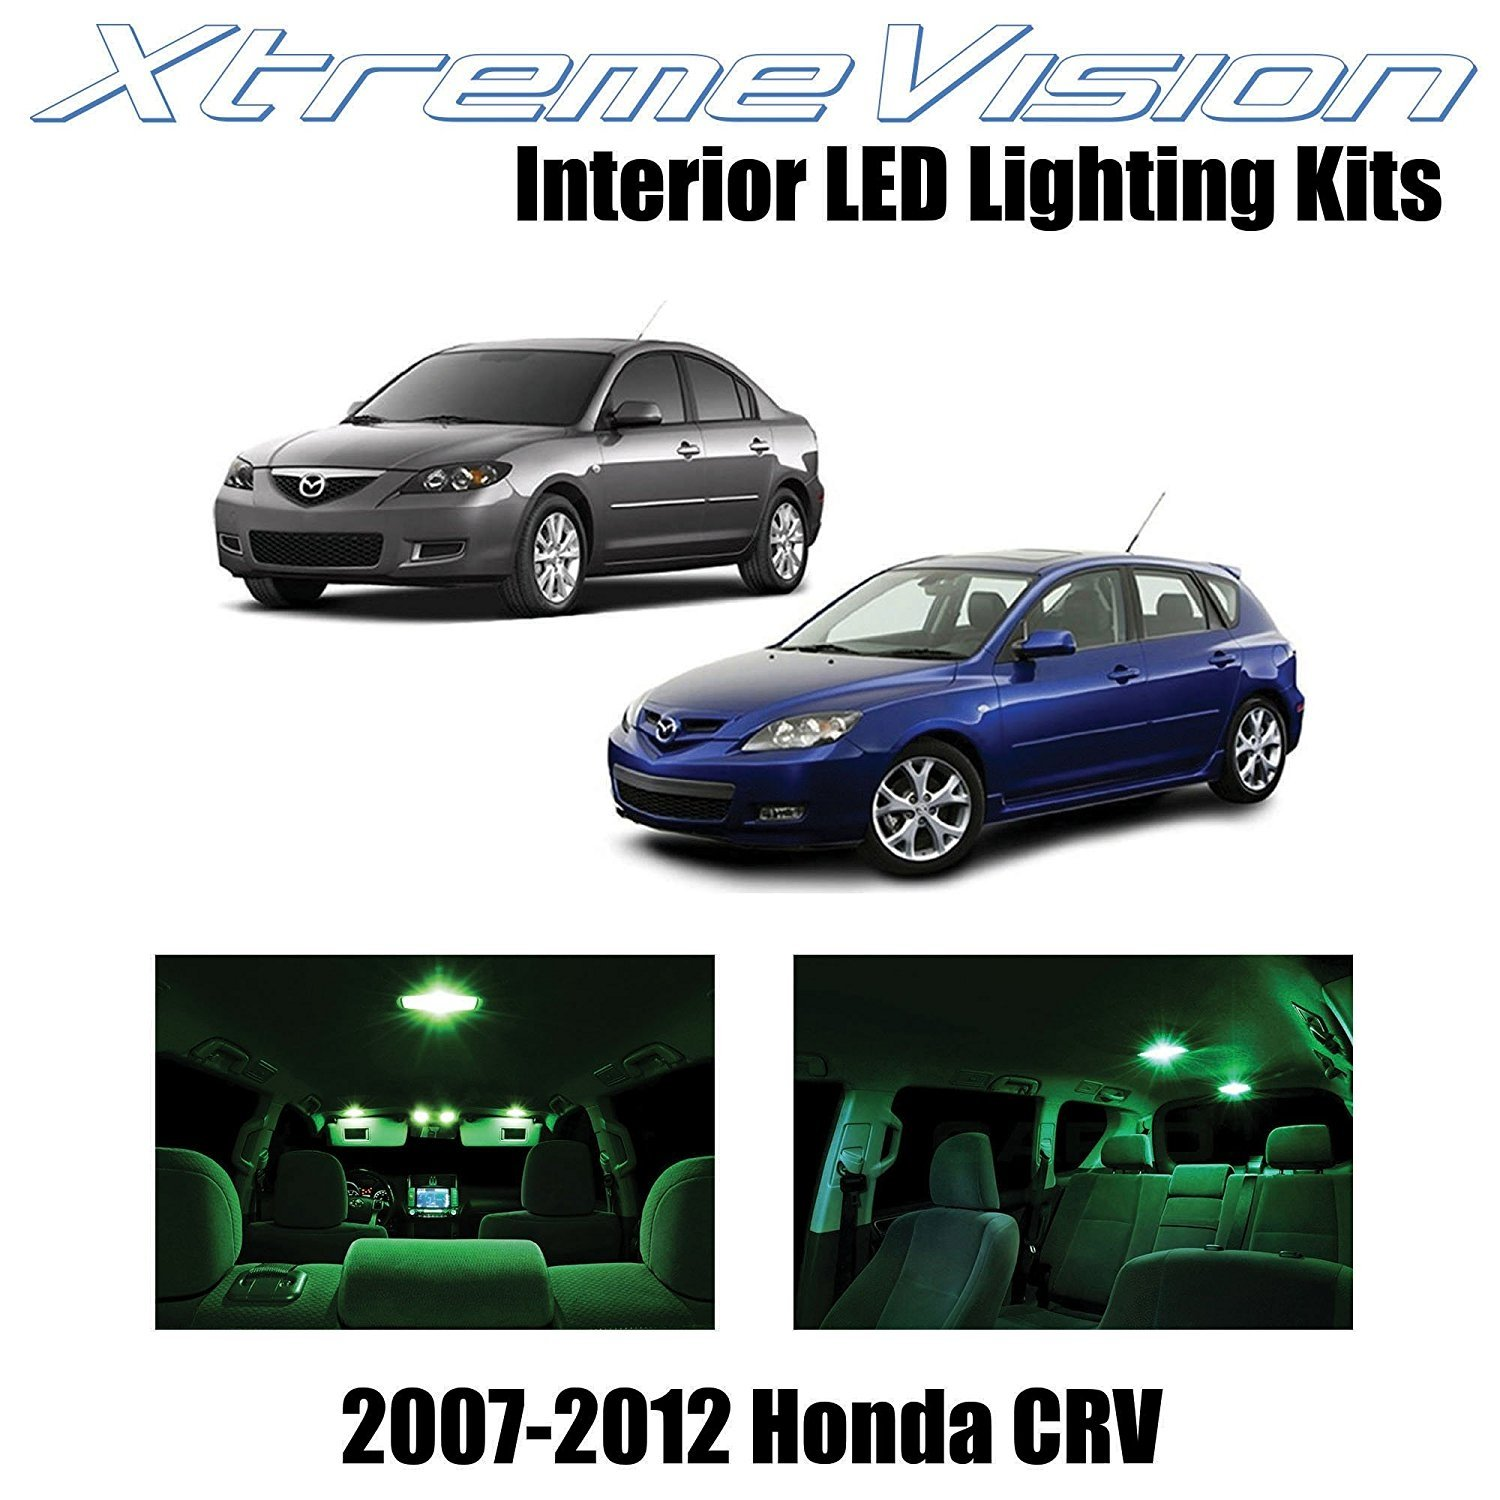 XtremeVision LED for Mazda 3 MS3 2004-2009 (10 Pieces) Green Premium Interior LED Kit Package + Installation Tool